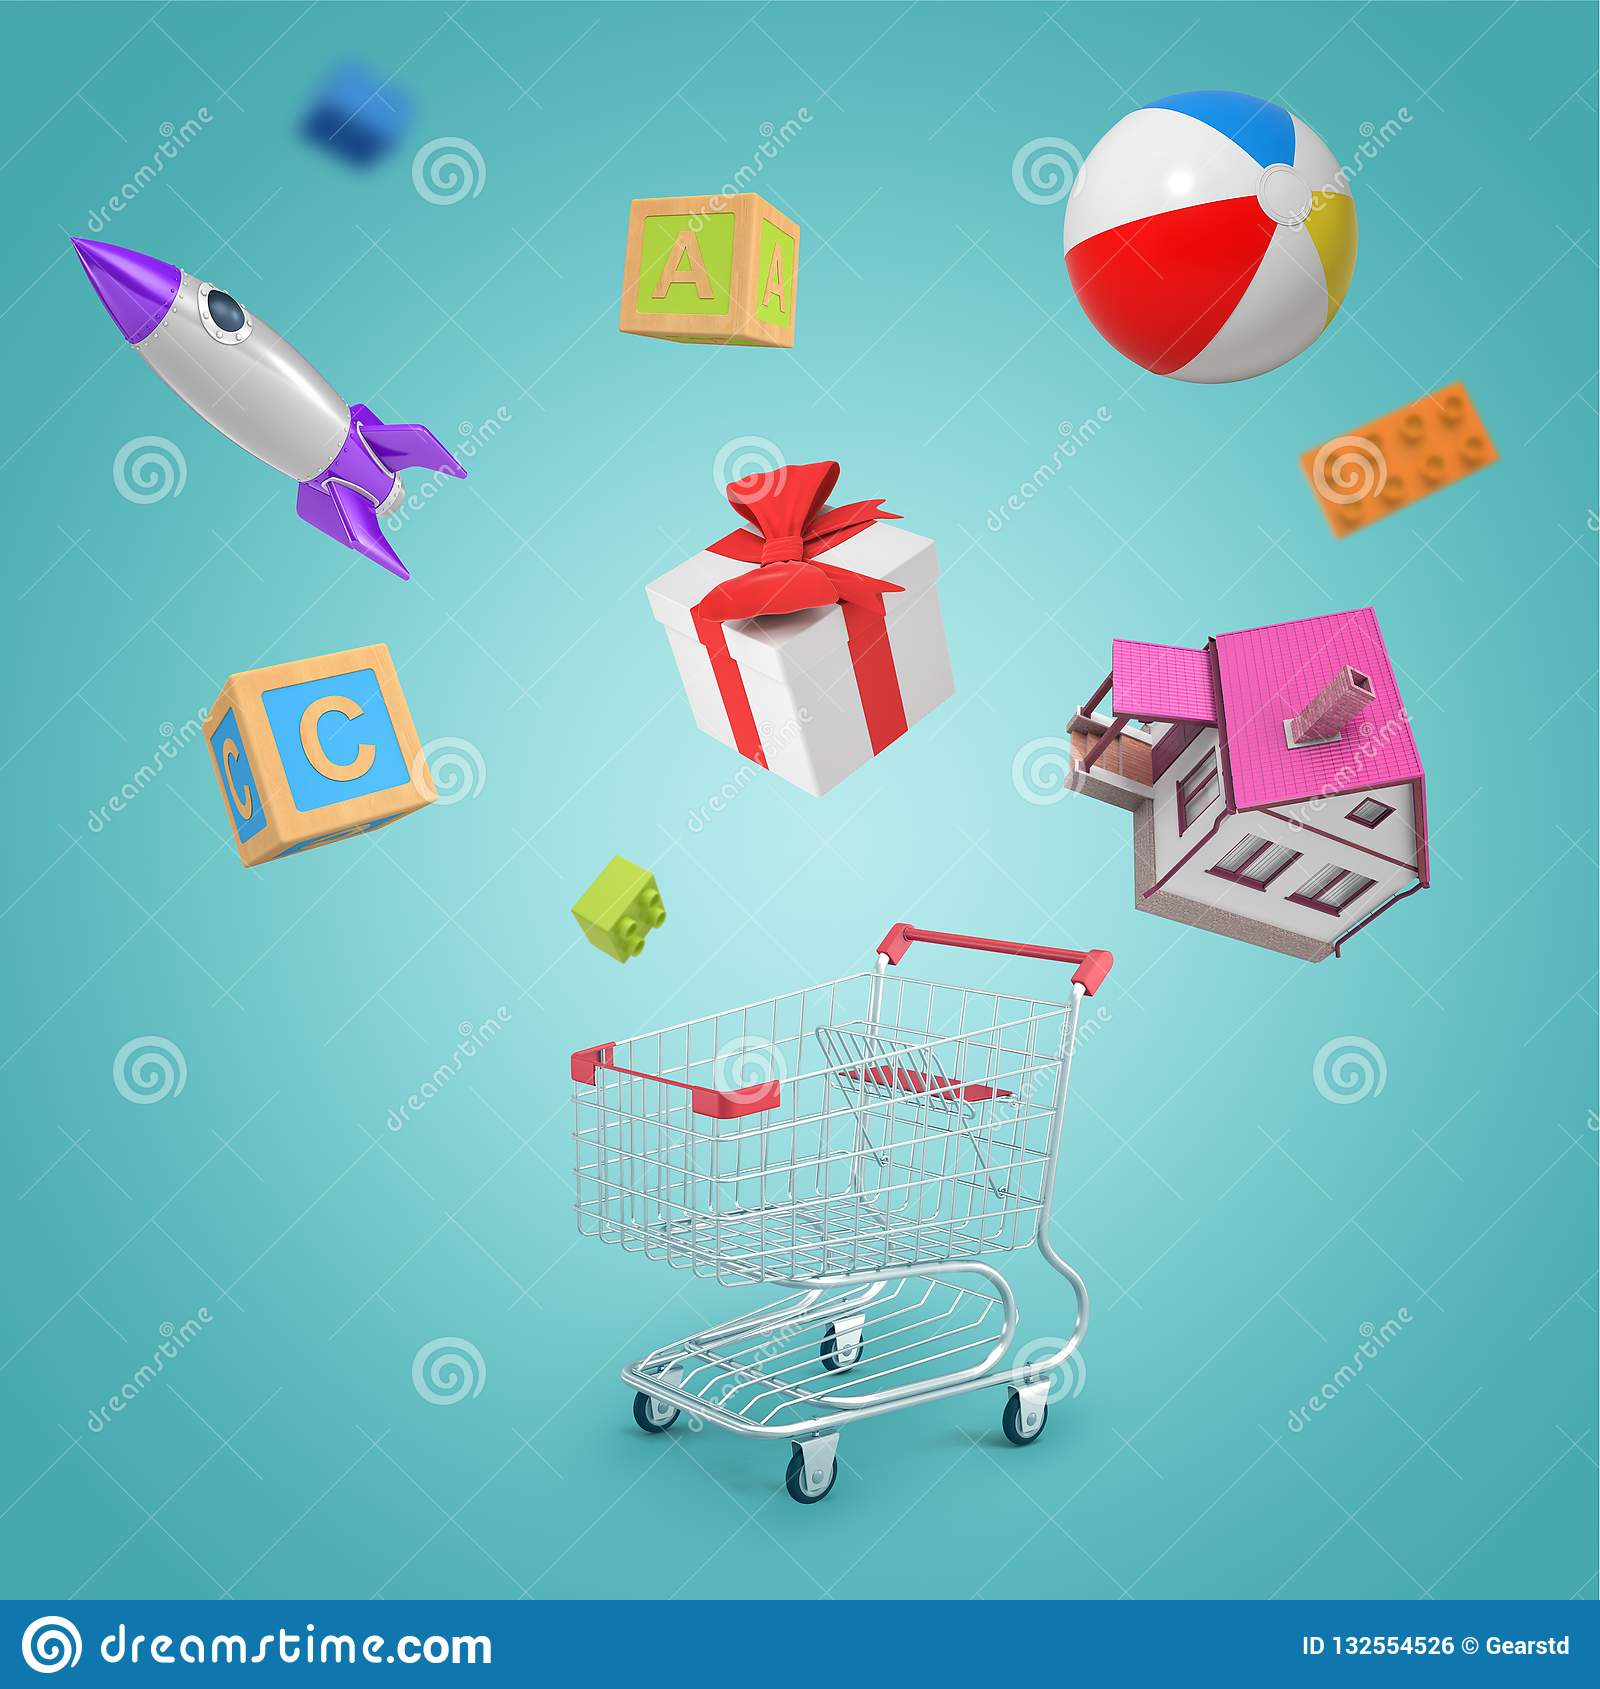 3d Rendering Of Random Objects Shopping Cart House Toy Ball Rocket Present Toy Bricks And Lego Parts On Blue Stock Illustration Illustration Of Game Instrument 132554526